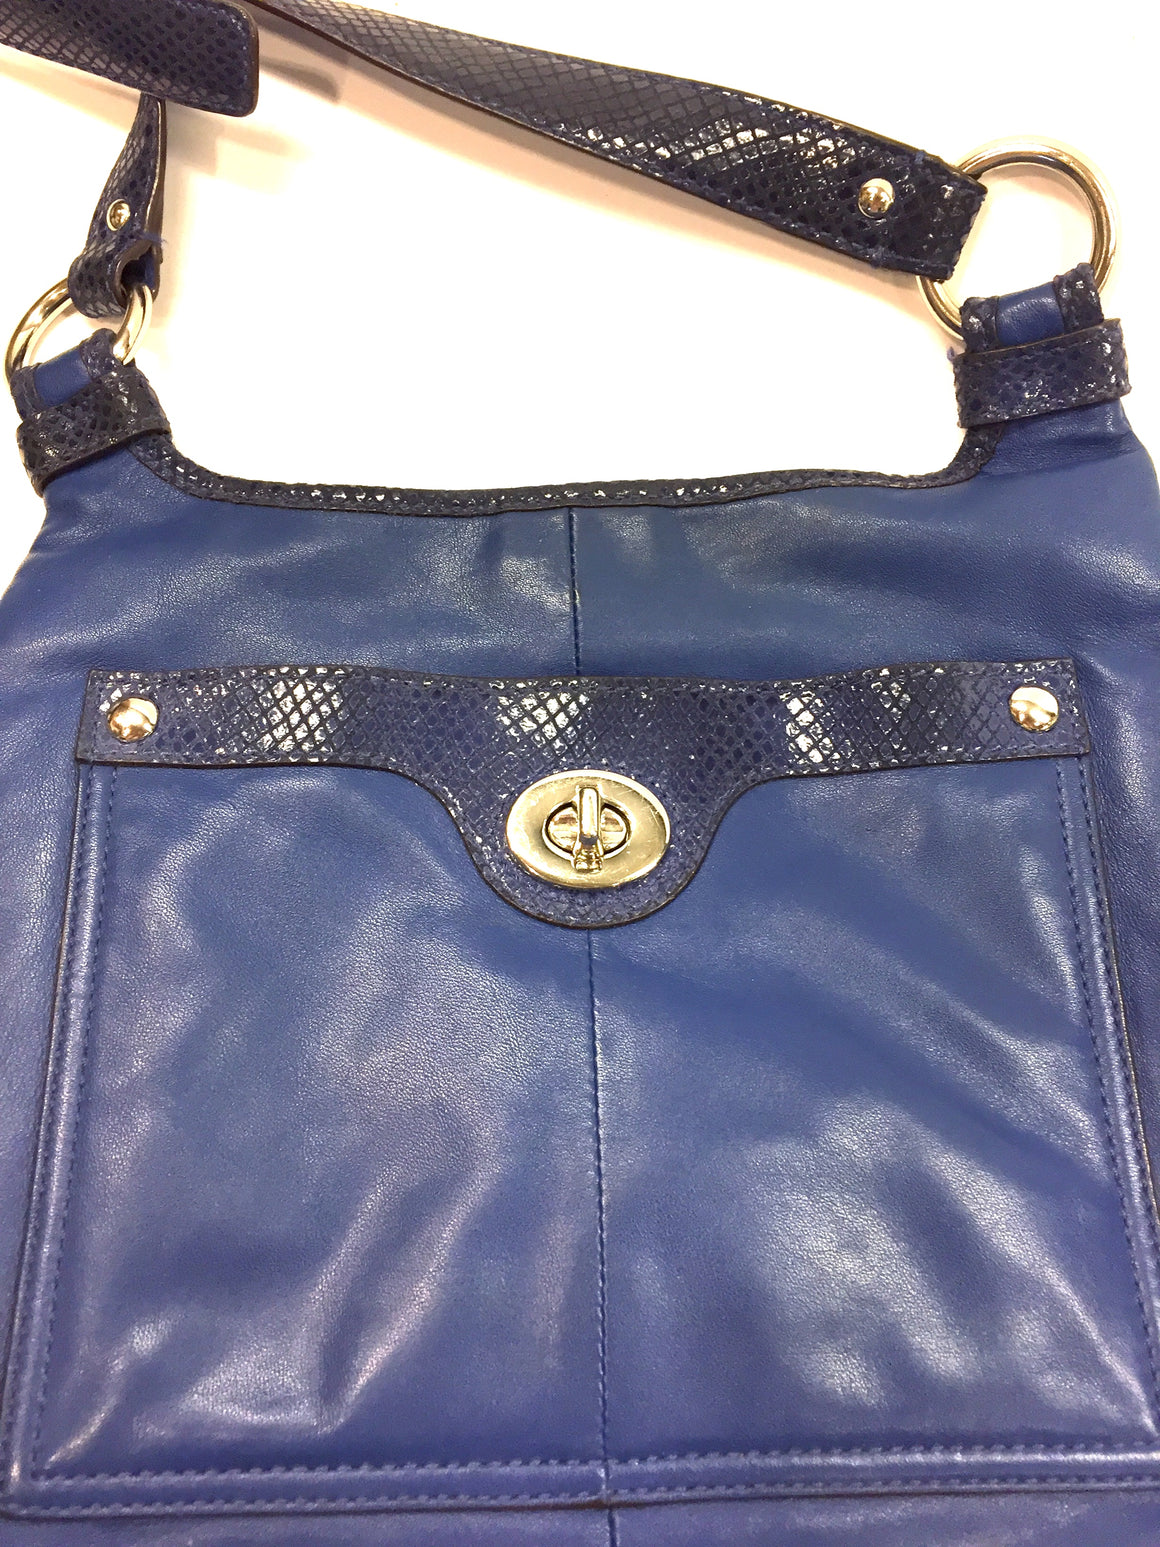 COACH Royal-Blue Leather Faux Reptile Trim Cross-Body Messenger Bag